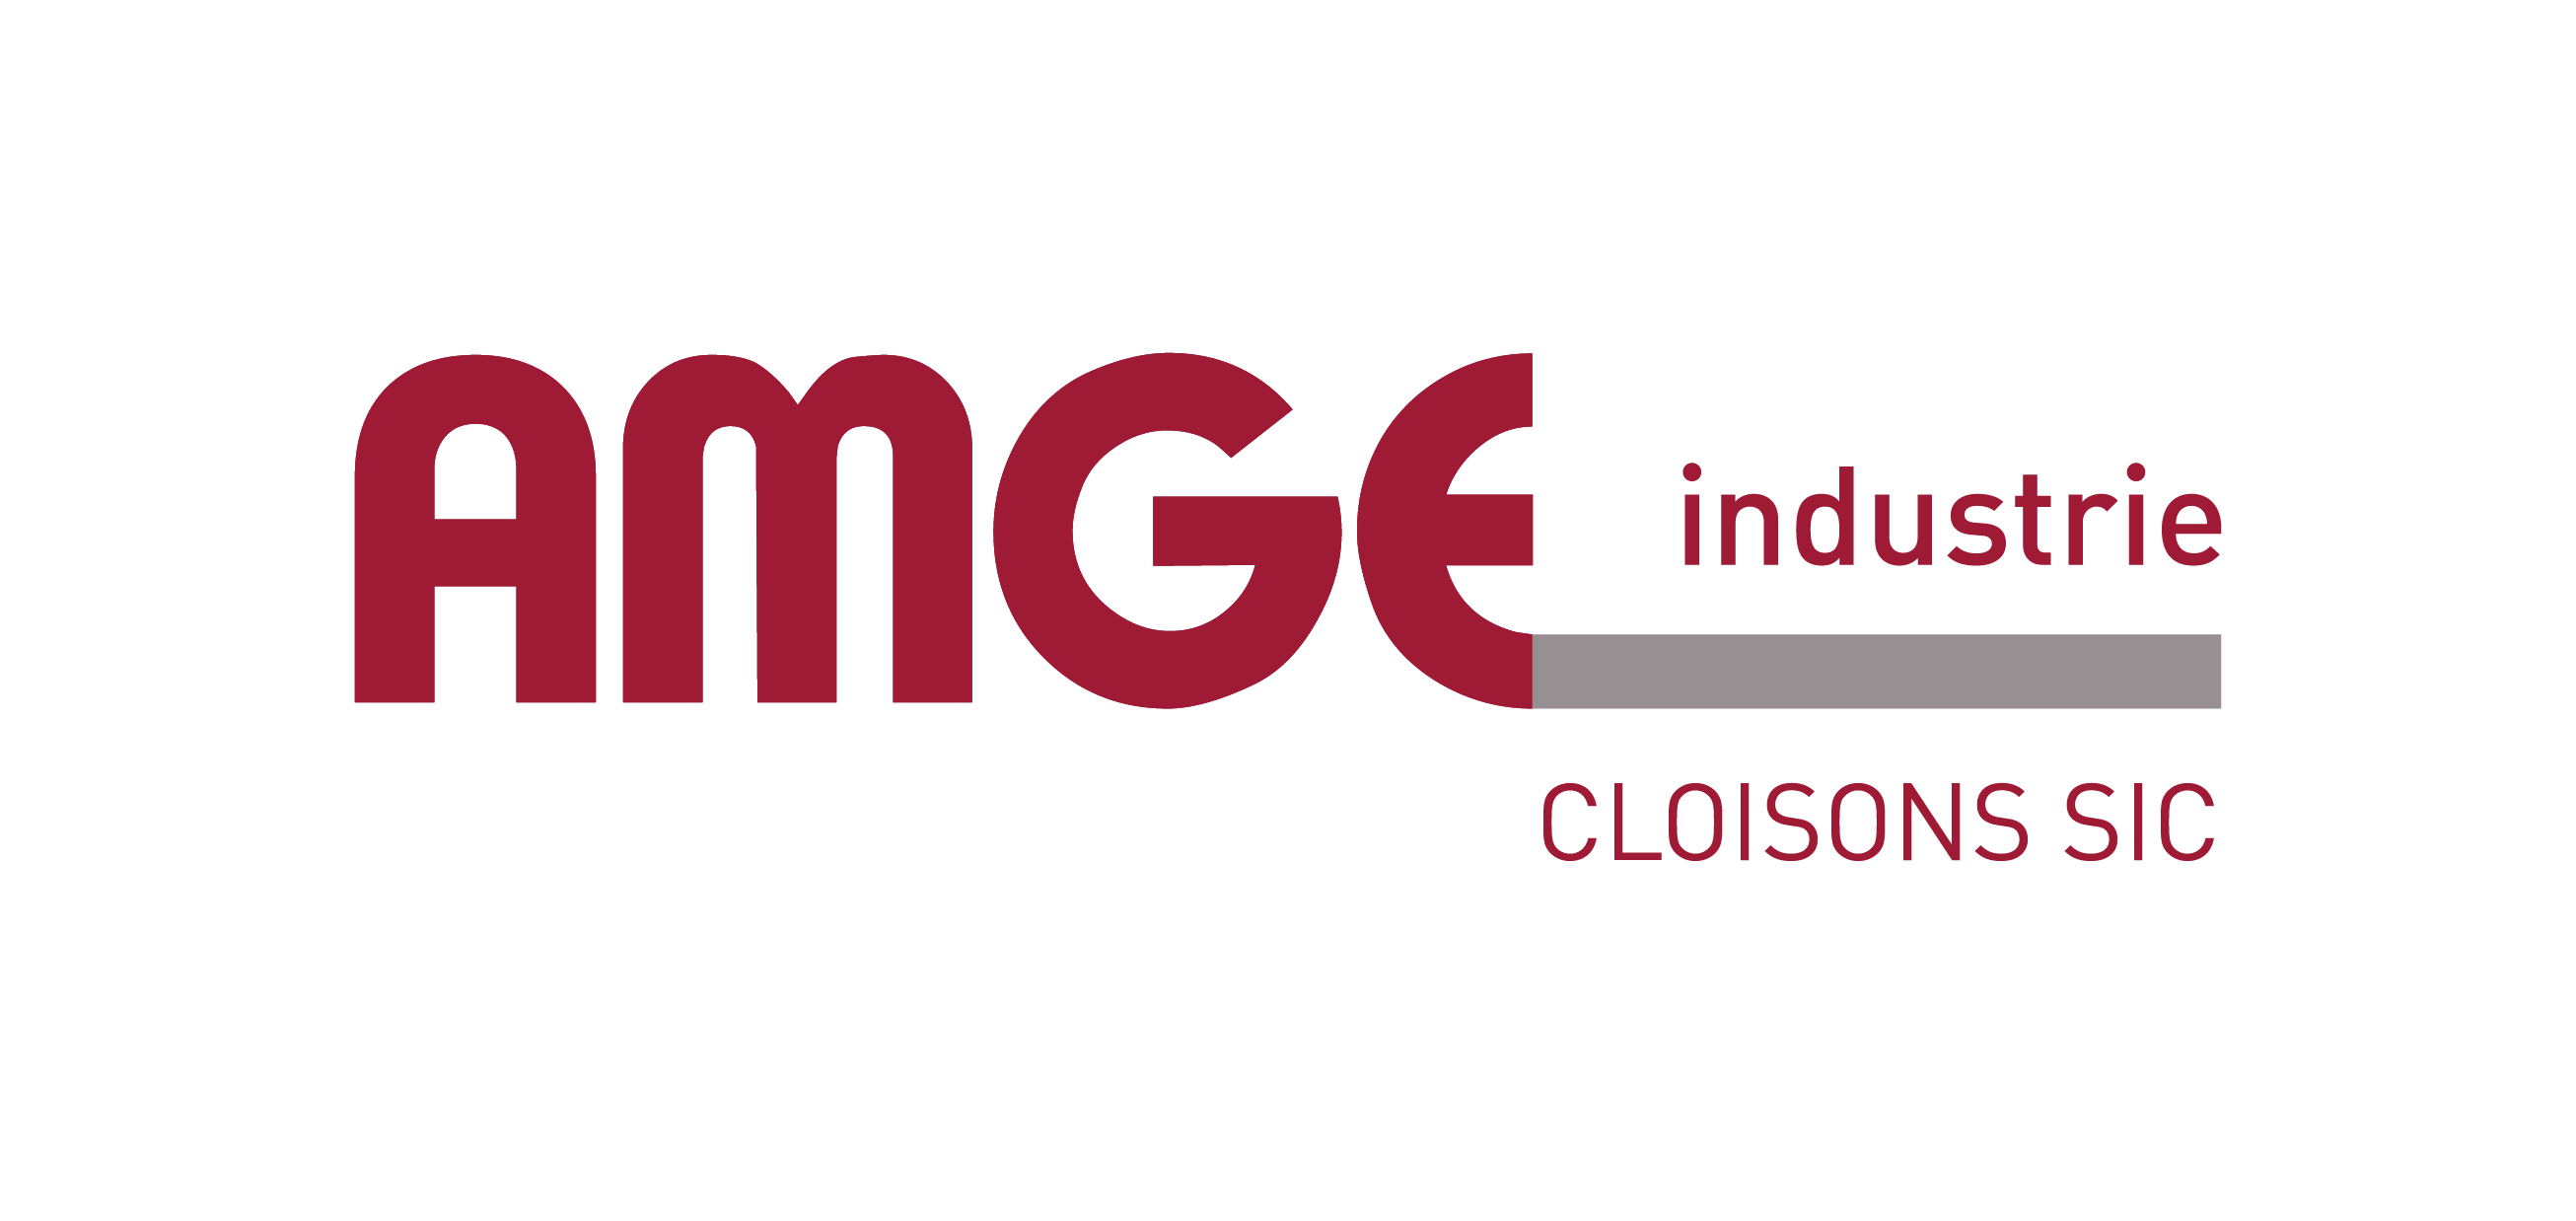 1525855803-amge-industrie-cloisons-sic.png